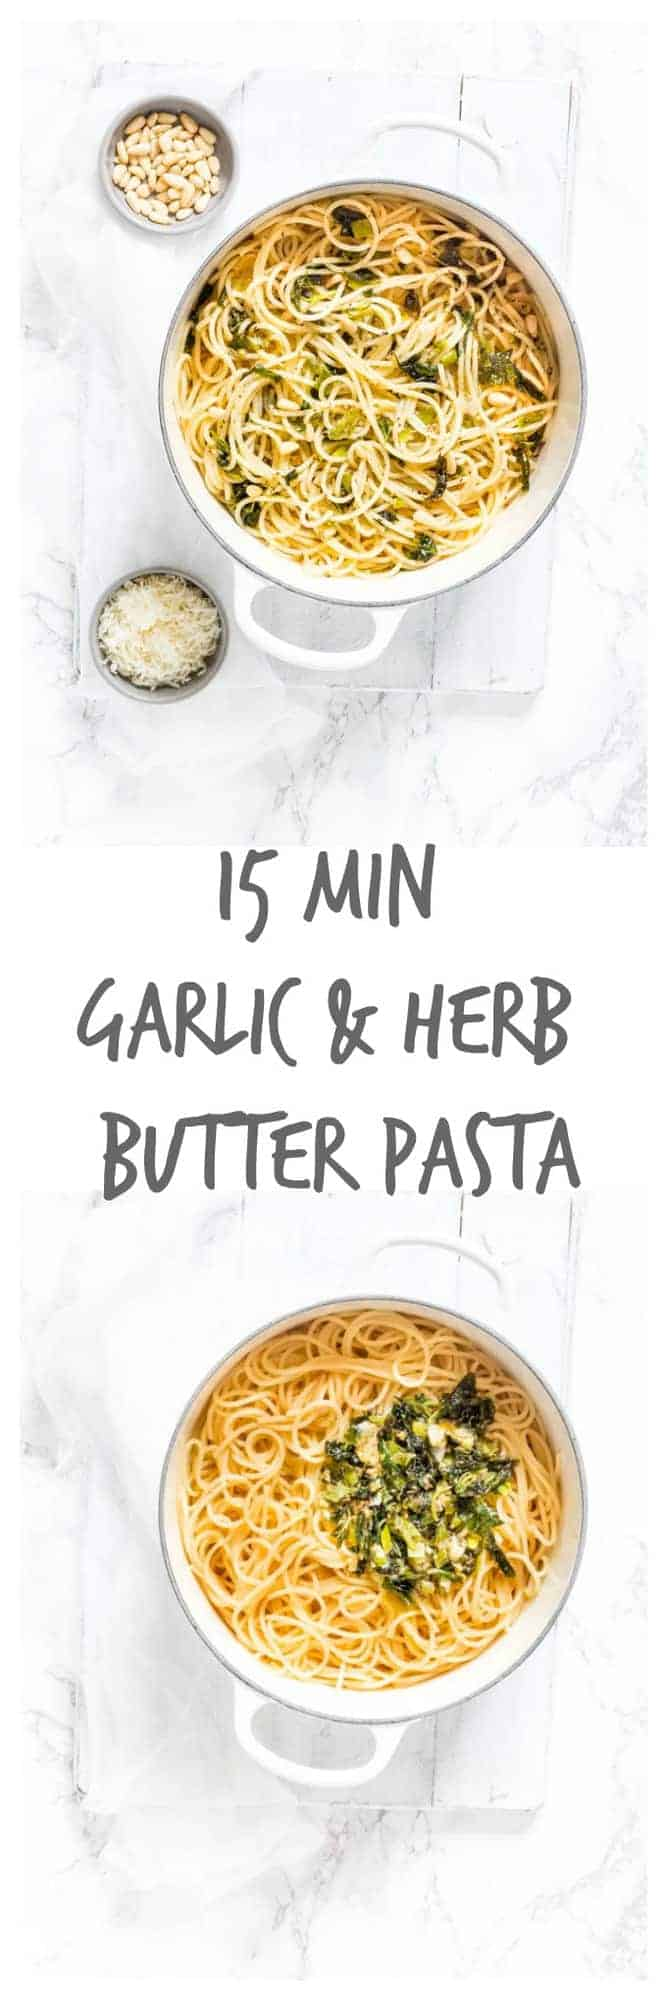 15 Min Garlic and Herb Butter Pasta - Recipes From A Pantry